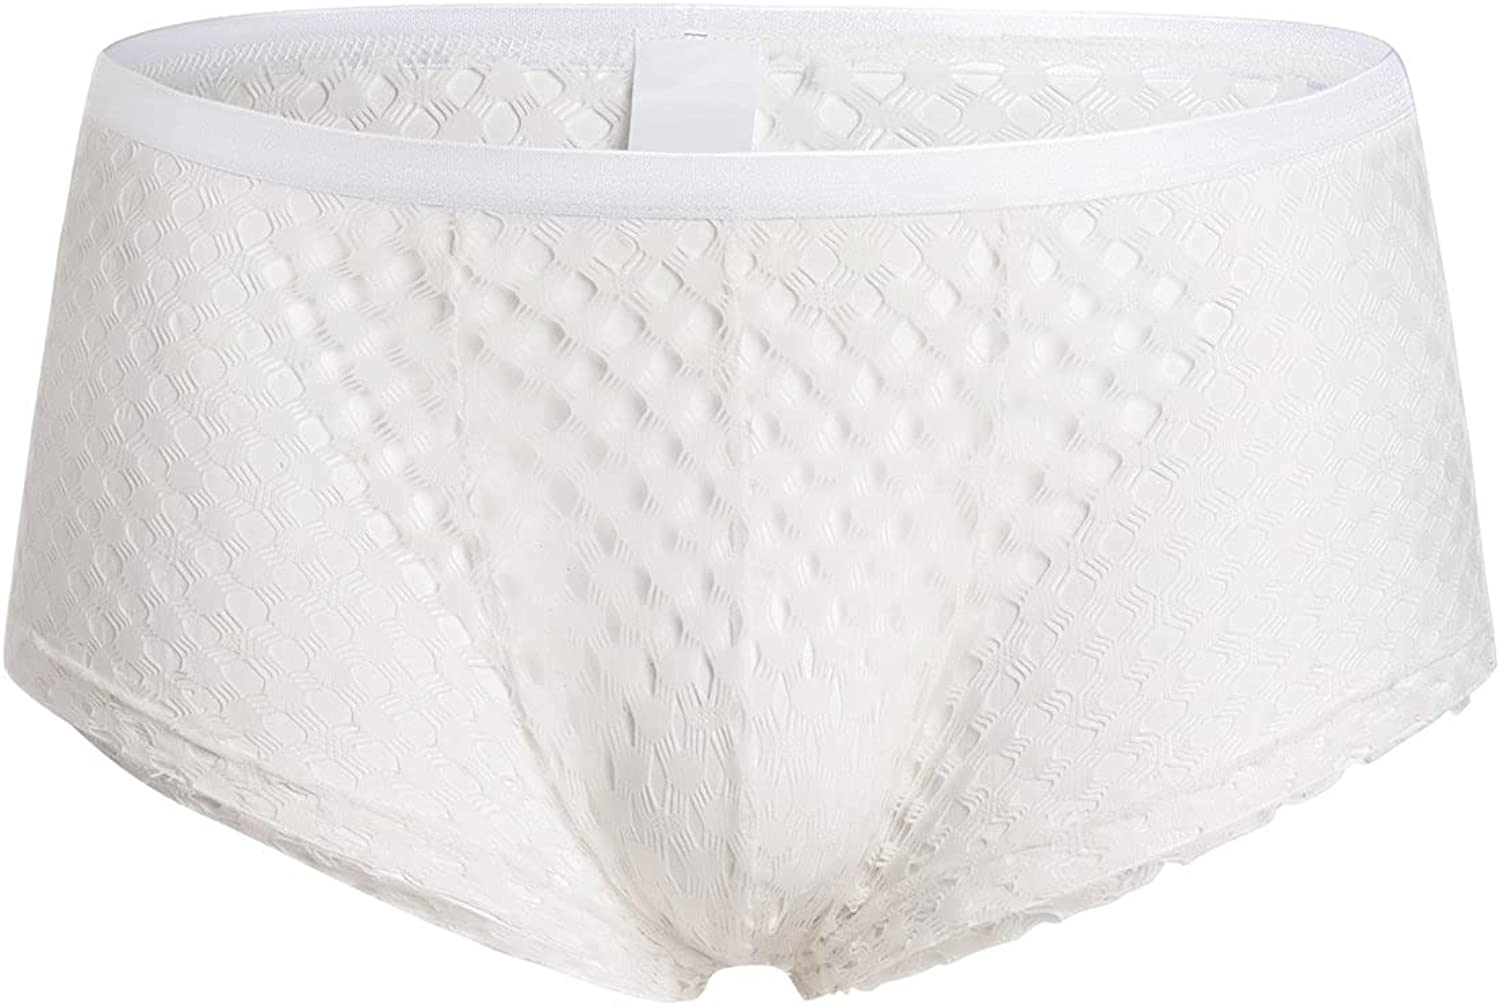 Men's See Through Fishnet Boxer Briefs Openwork Mesh Breathable Underwear Sexy Sissy Soft Hollow Lingerie Underpants